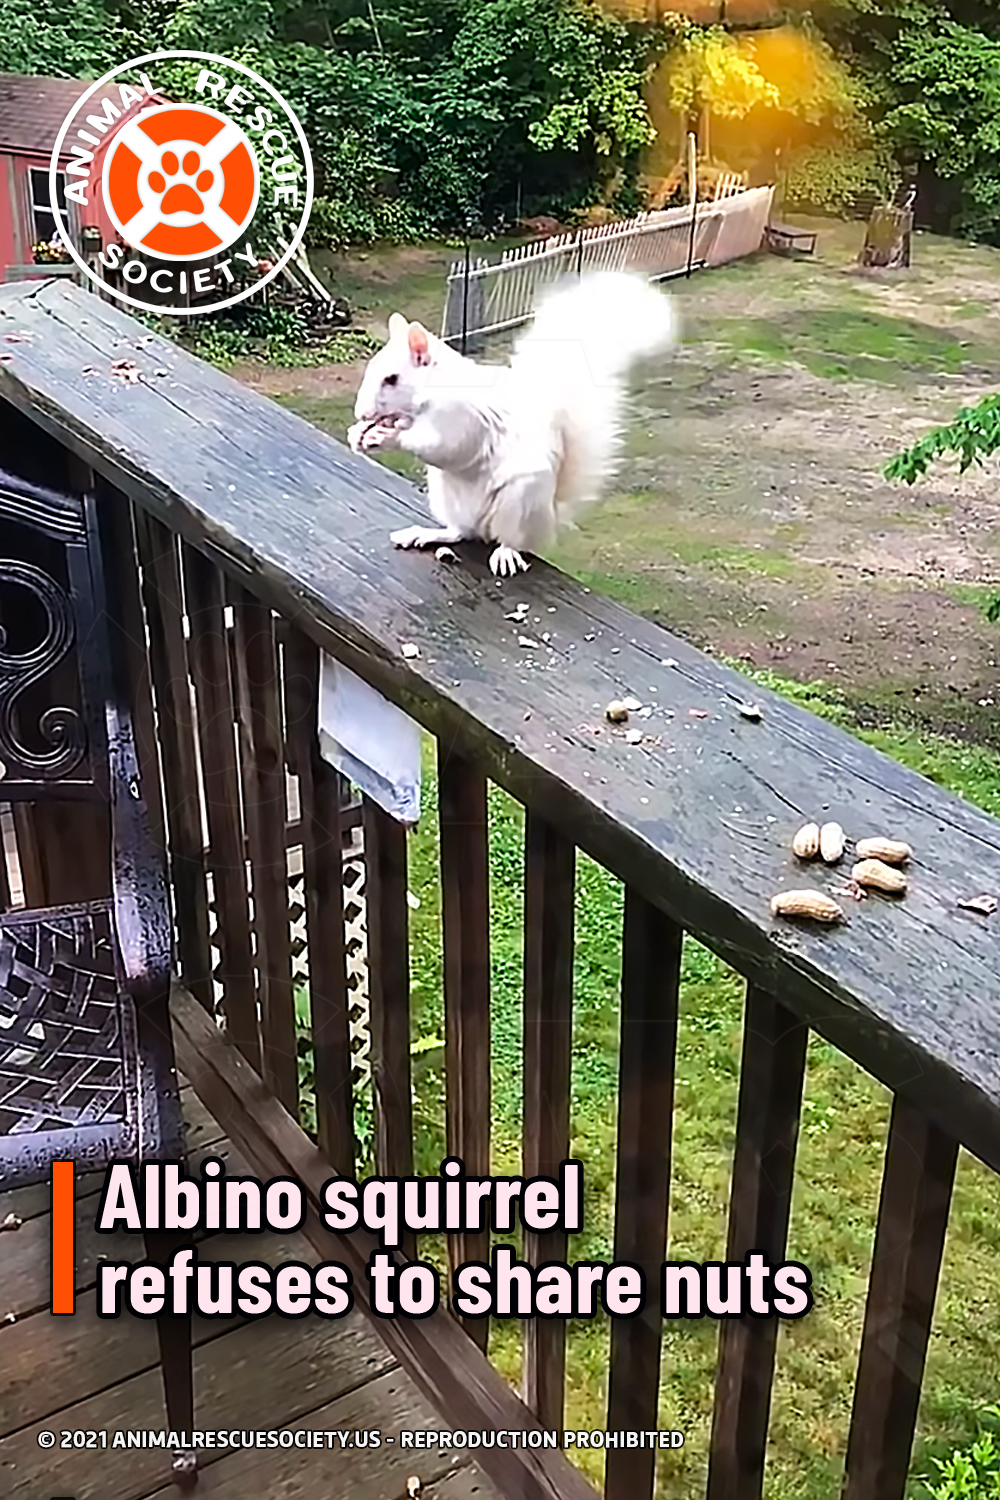 Albino squirrel refuses to share nuts